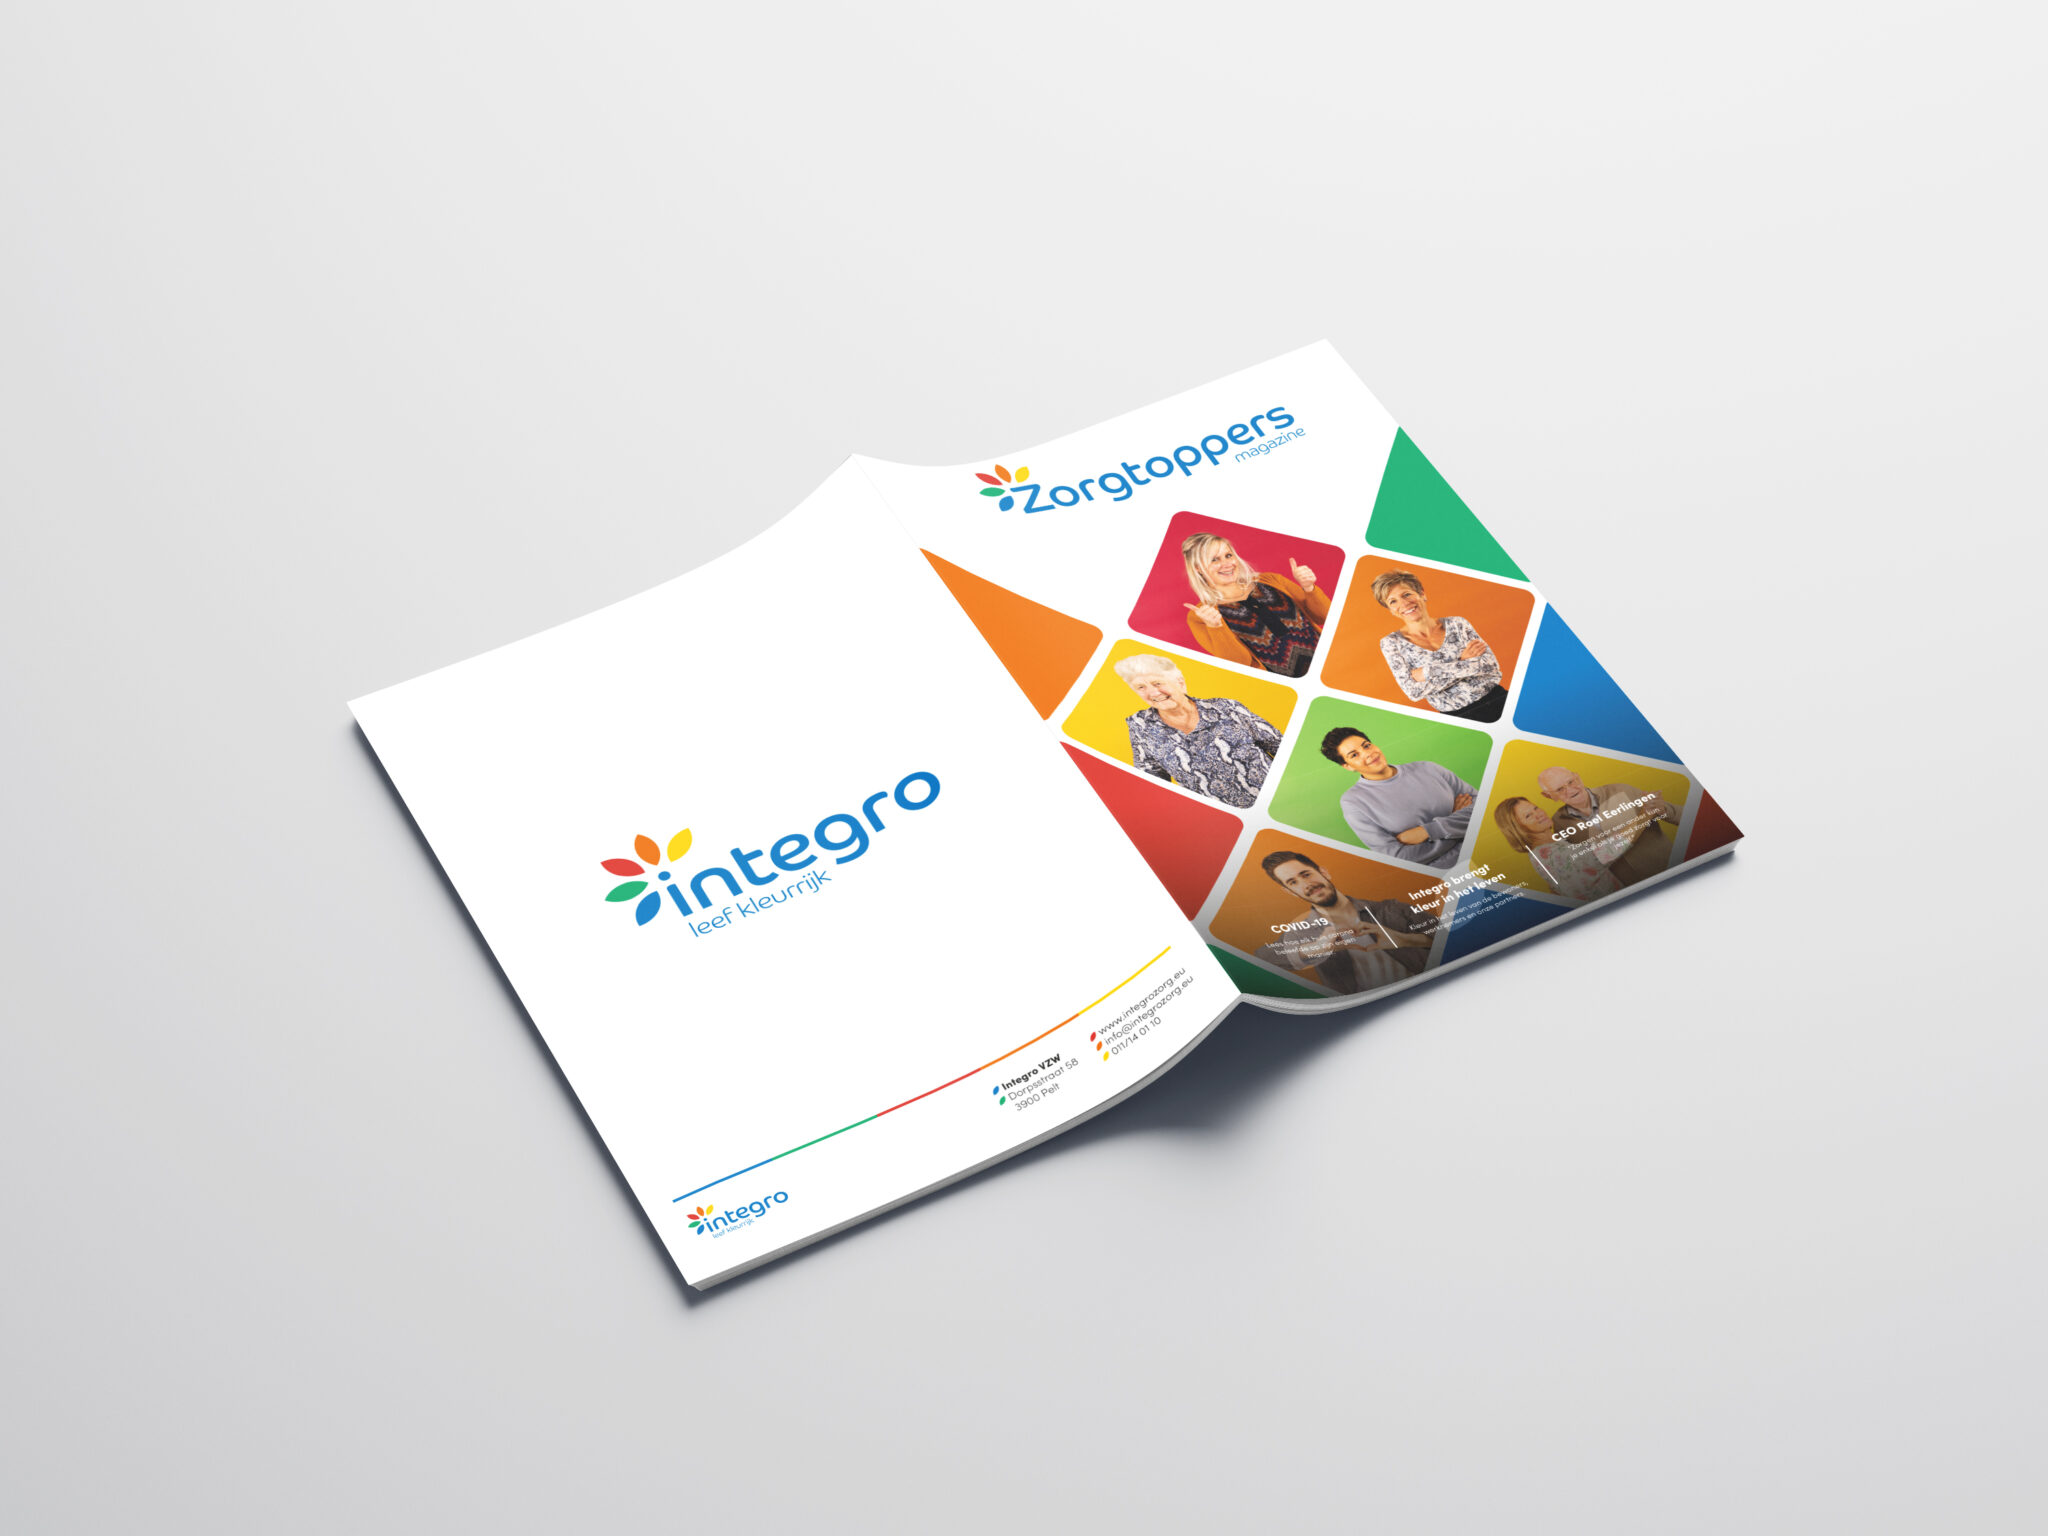 Zorgtoppers magazine